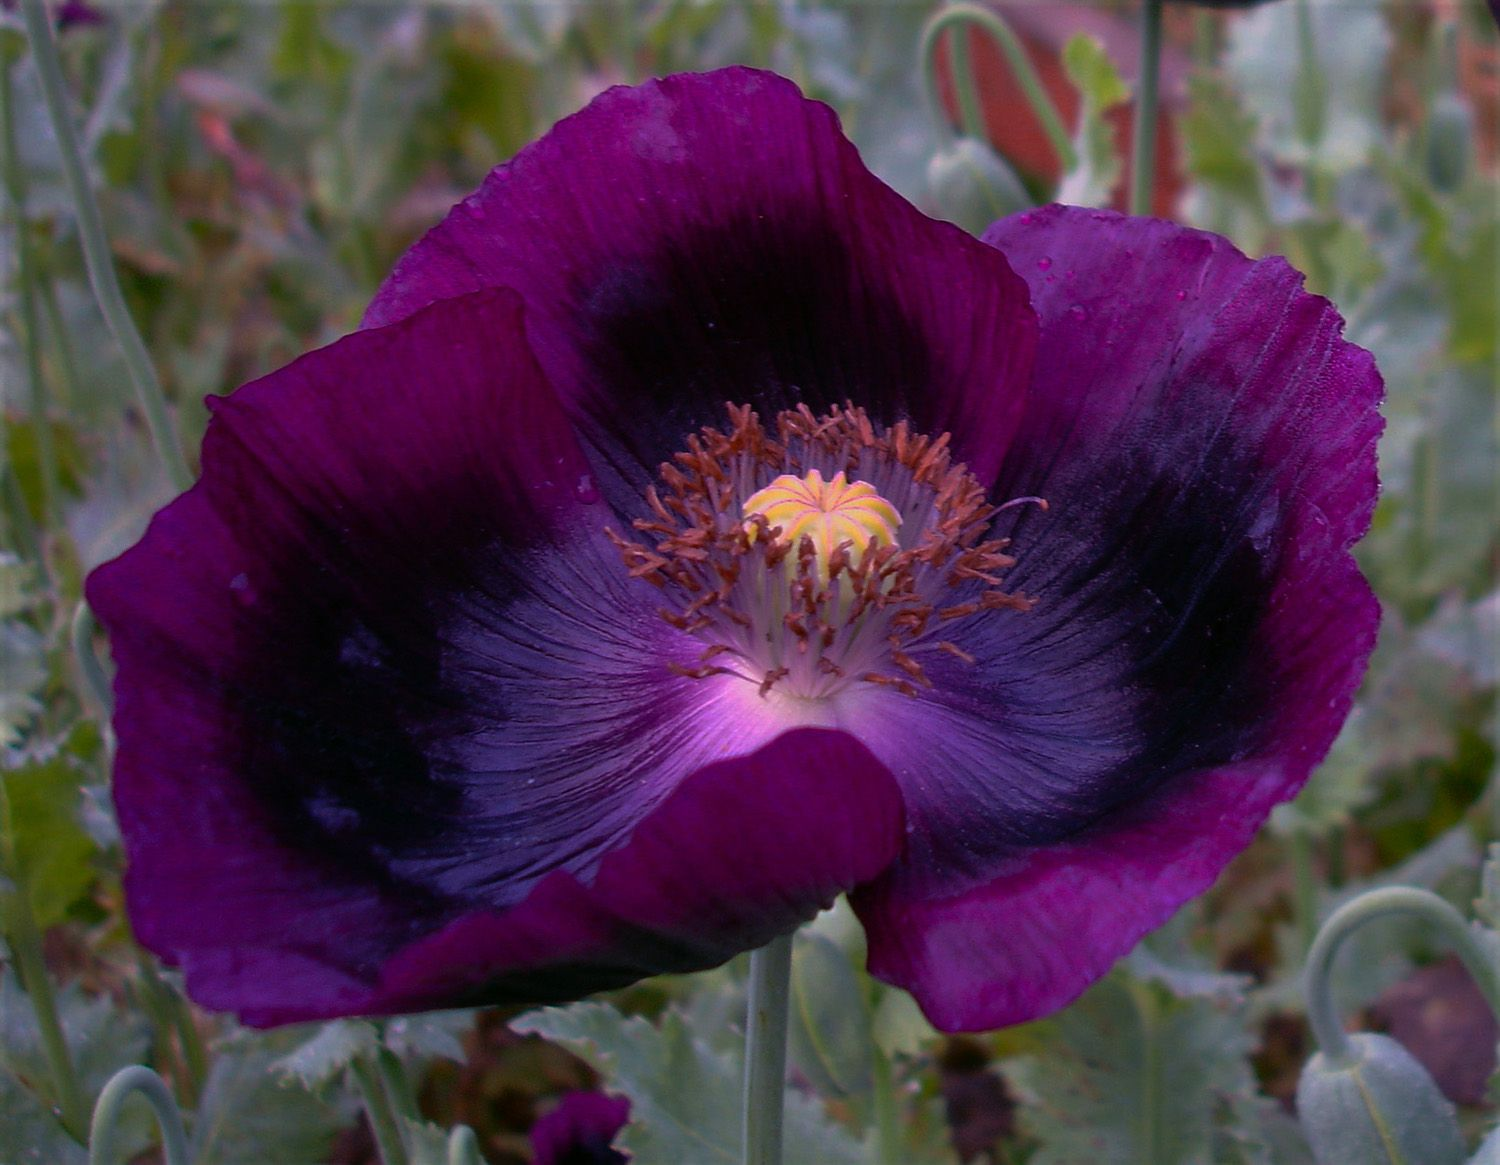 I Love This Plum Color Dianas Purple Poppies Holistic Well Being